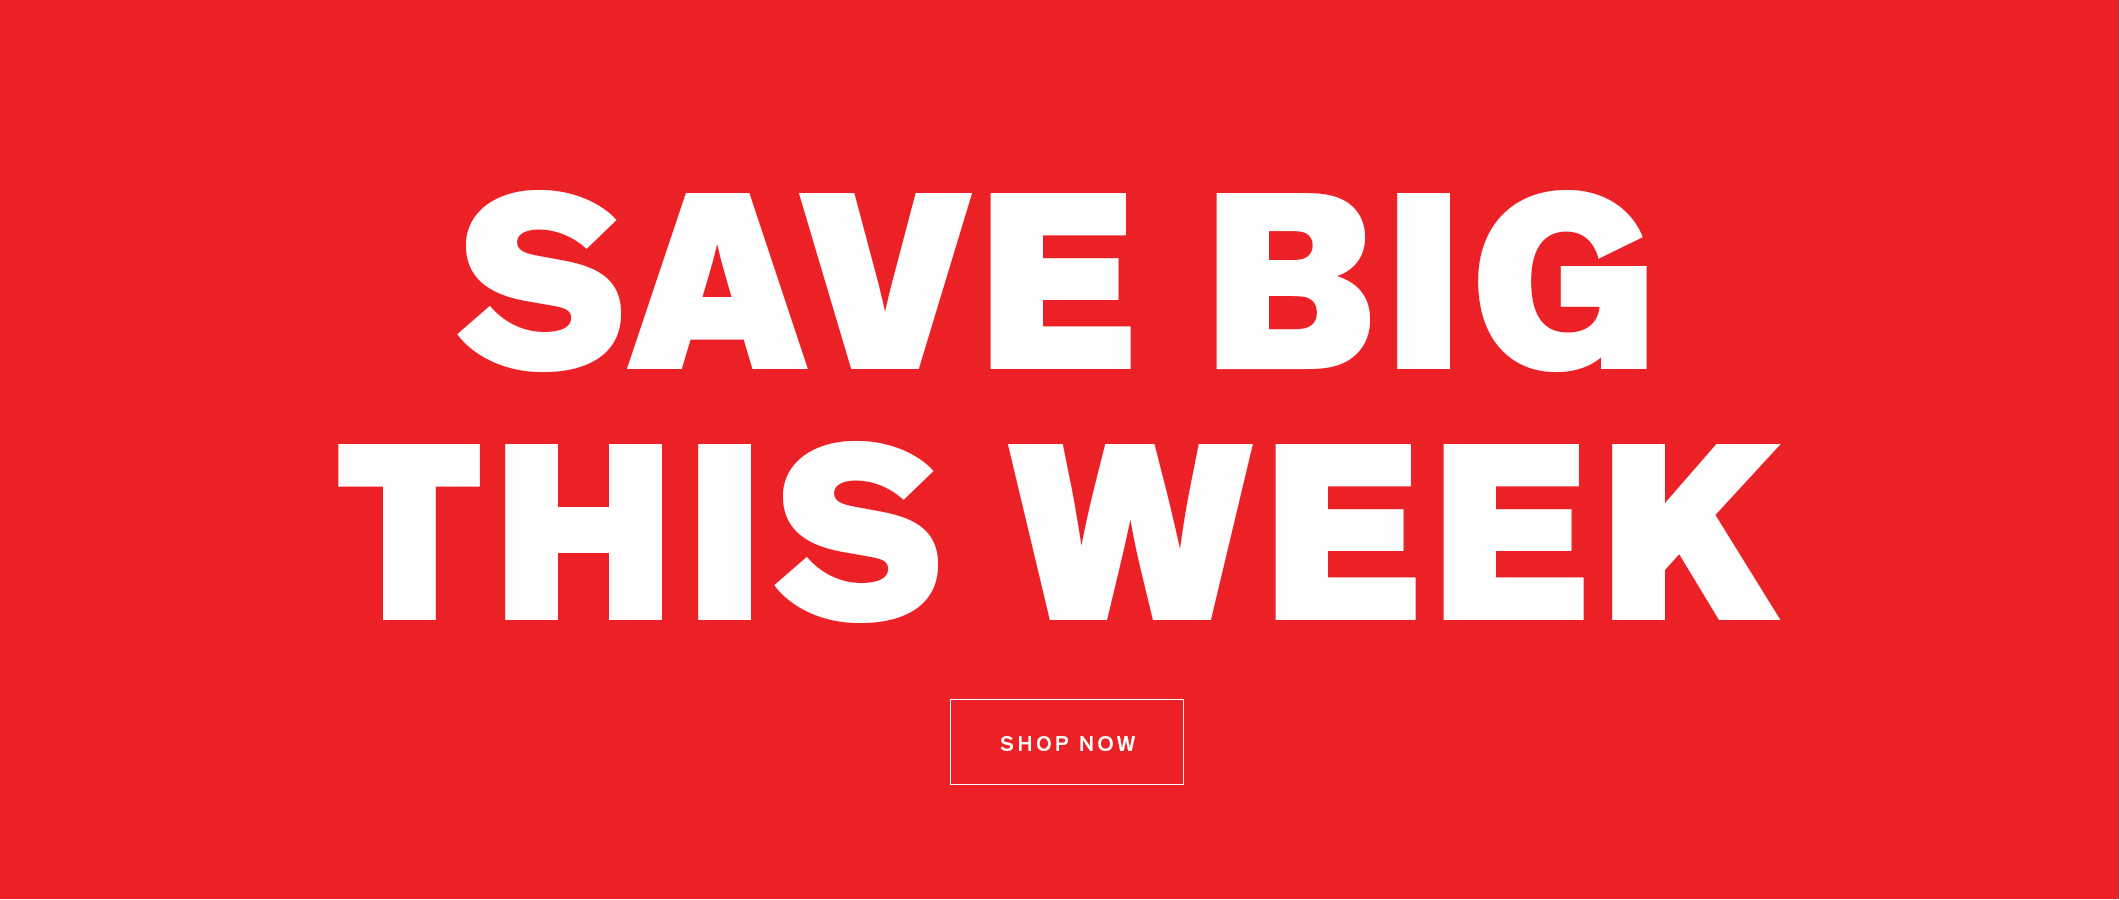 Save Big This Week  SHOP NOW